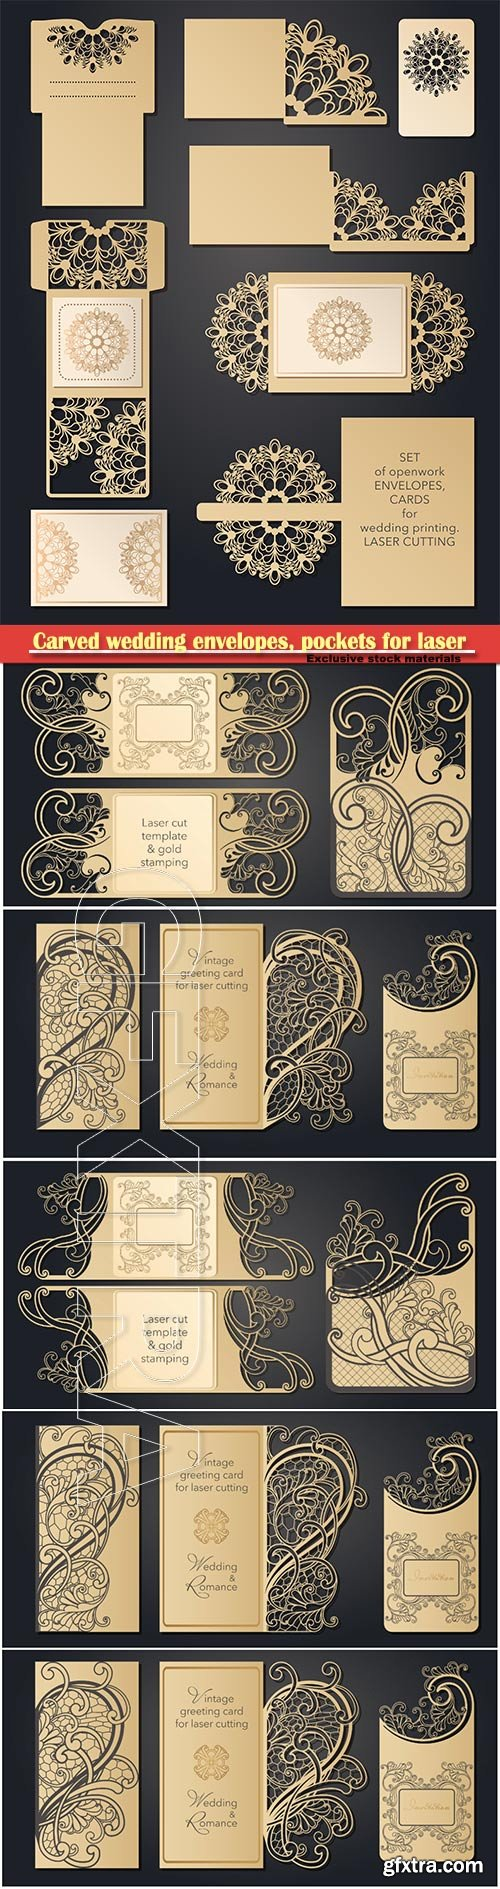 Carved wedding envelopes, pockets for laser cutting, invitations, wedding cards, party, romantic date